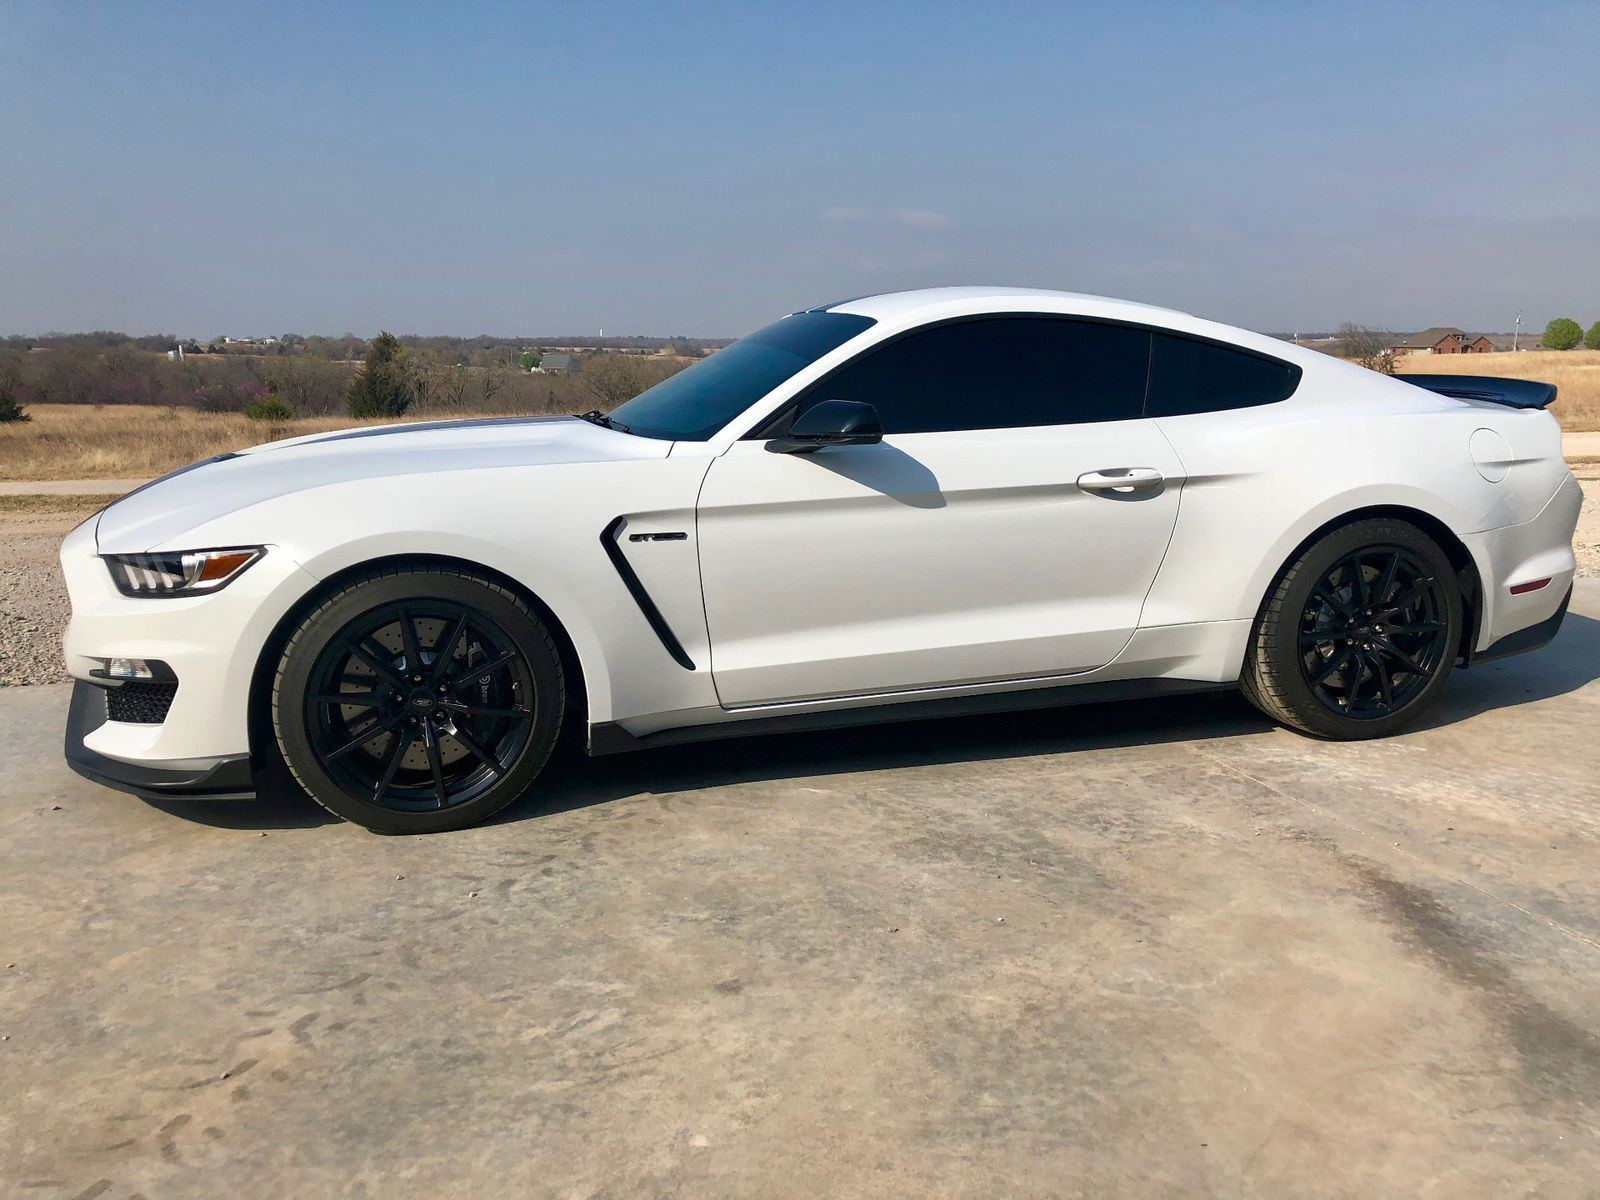 2017 Shelby Gt350 For Sale >> Amazing Ford Mustang Shelby GT350 2017 Shelby GT350 2100 ...